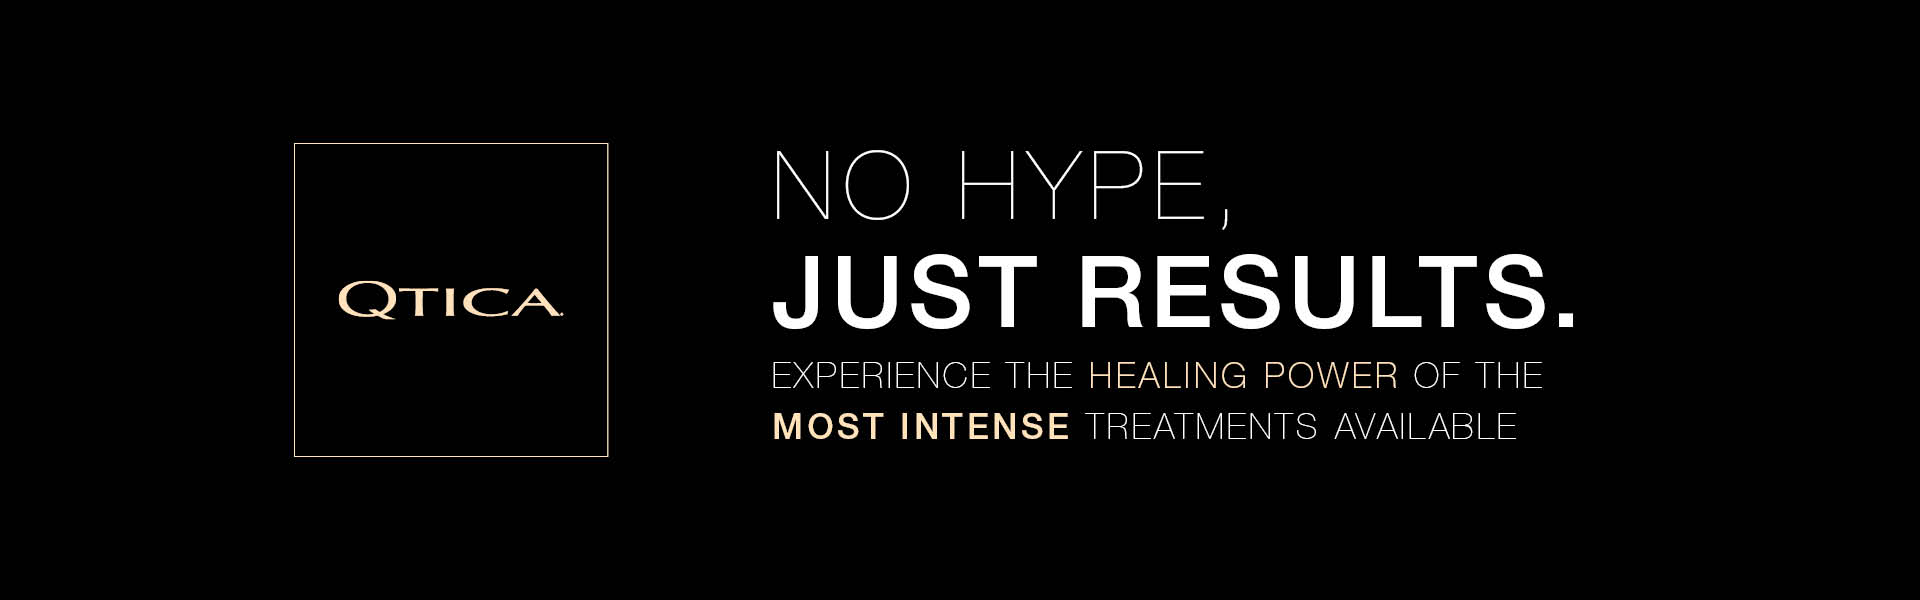 Qtica No Hype Just results. Experience the healing power of the most intense treatments available.